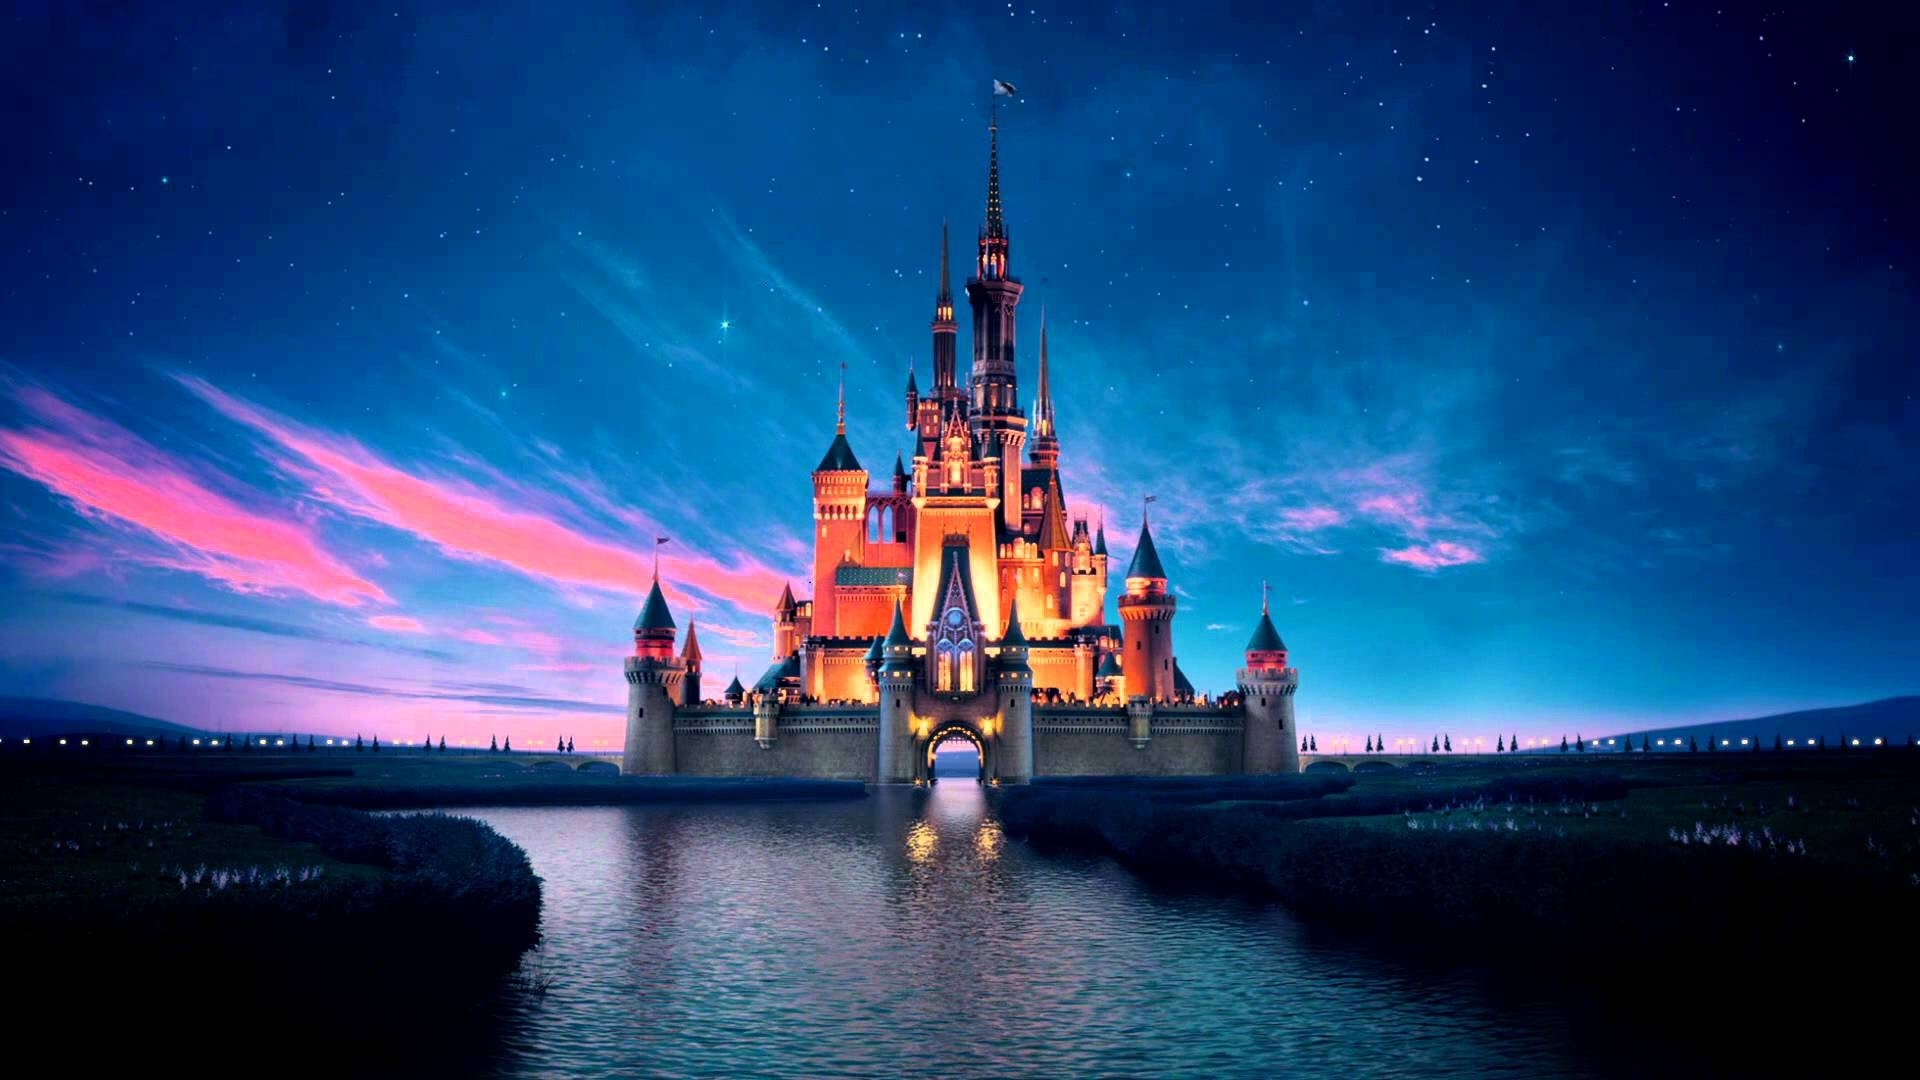 walt disney studios: the castle - logo (2012) | hd 1080p - youtube